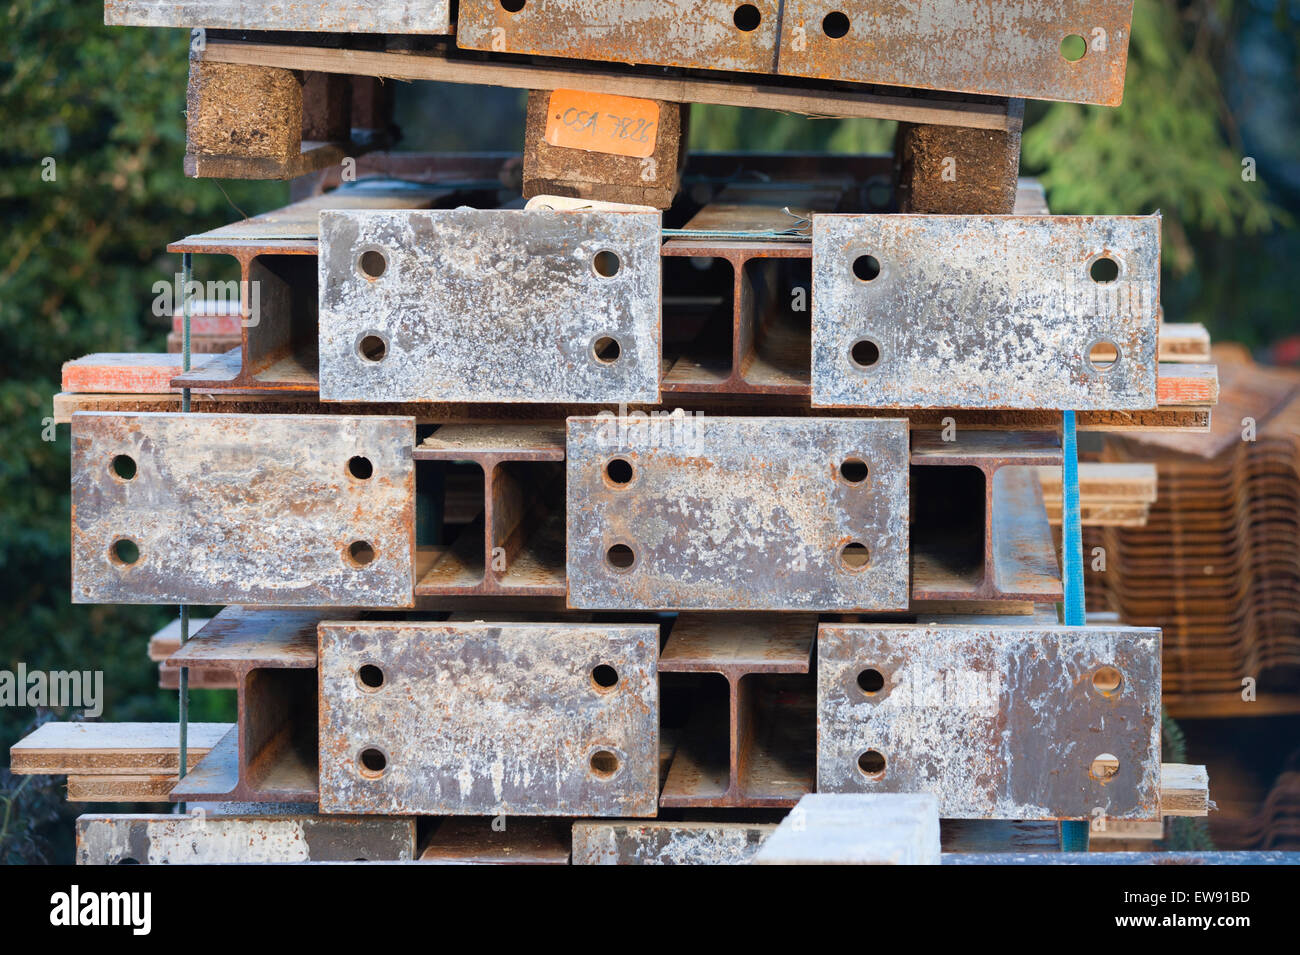 Steel construction material stored at a construction site - Stock Image